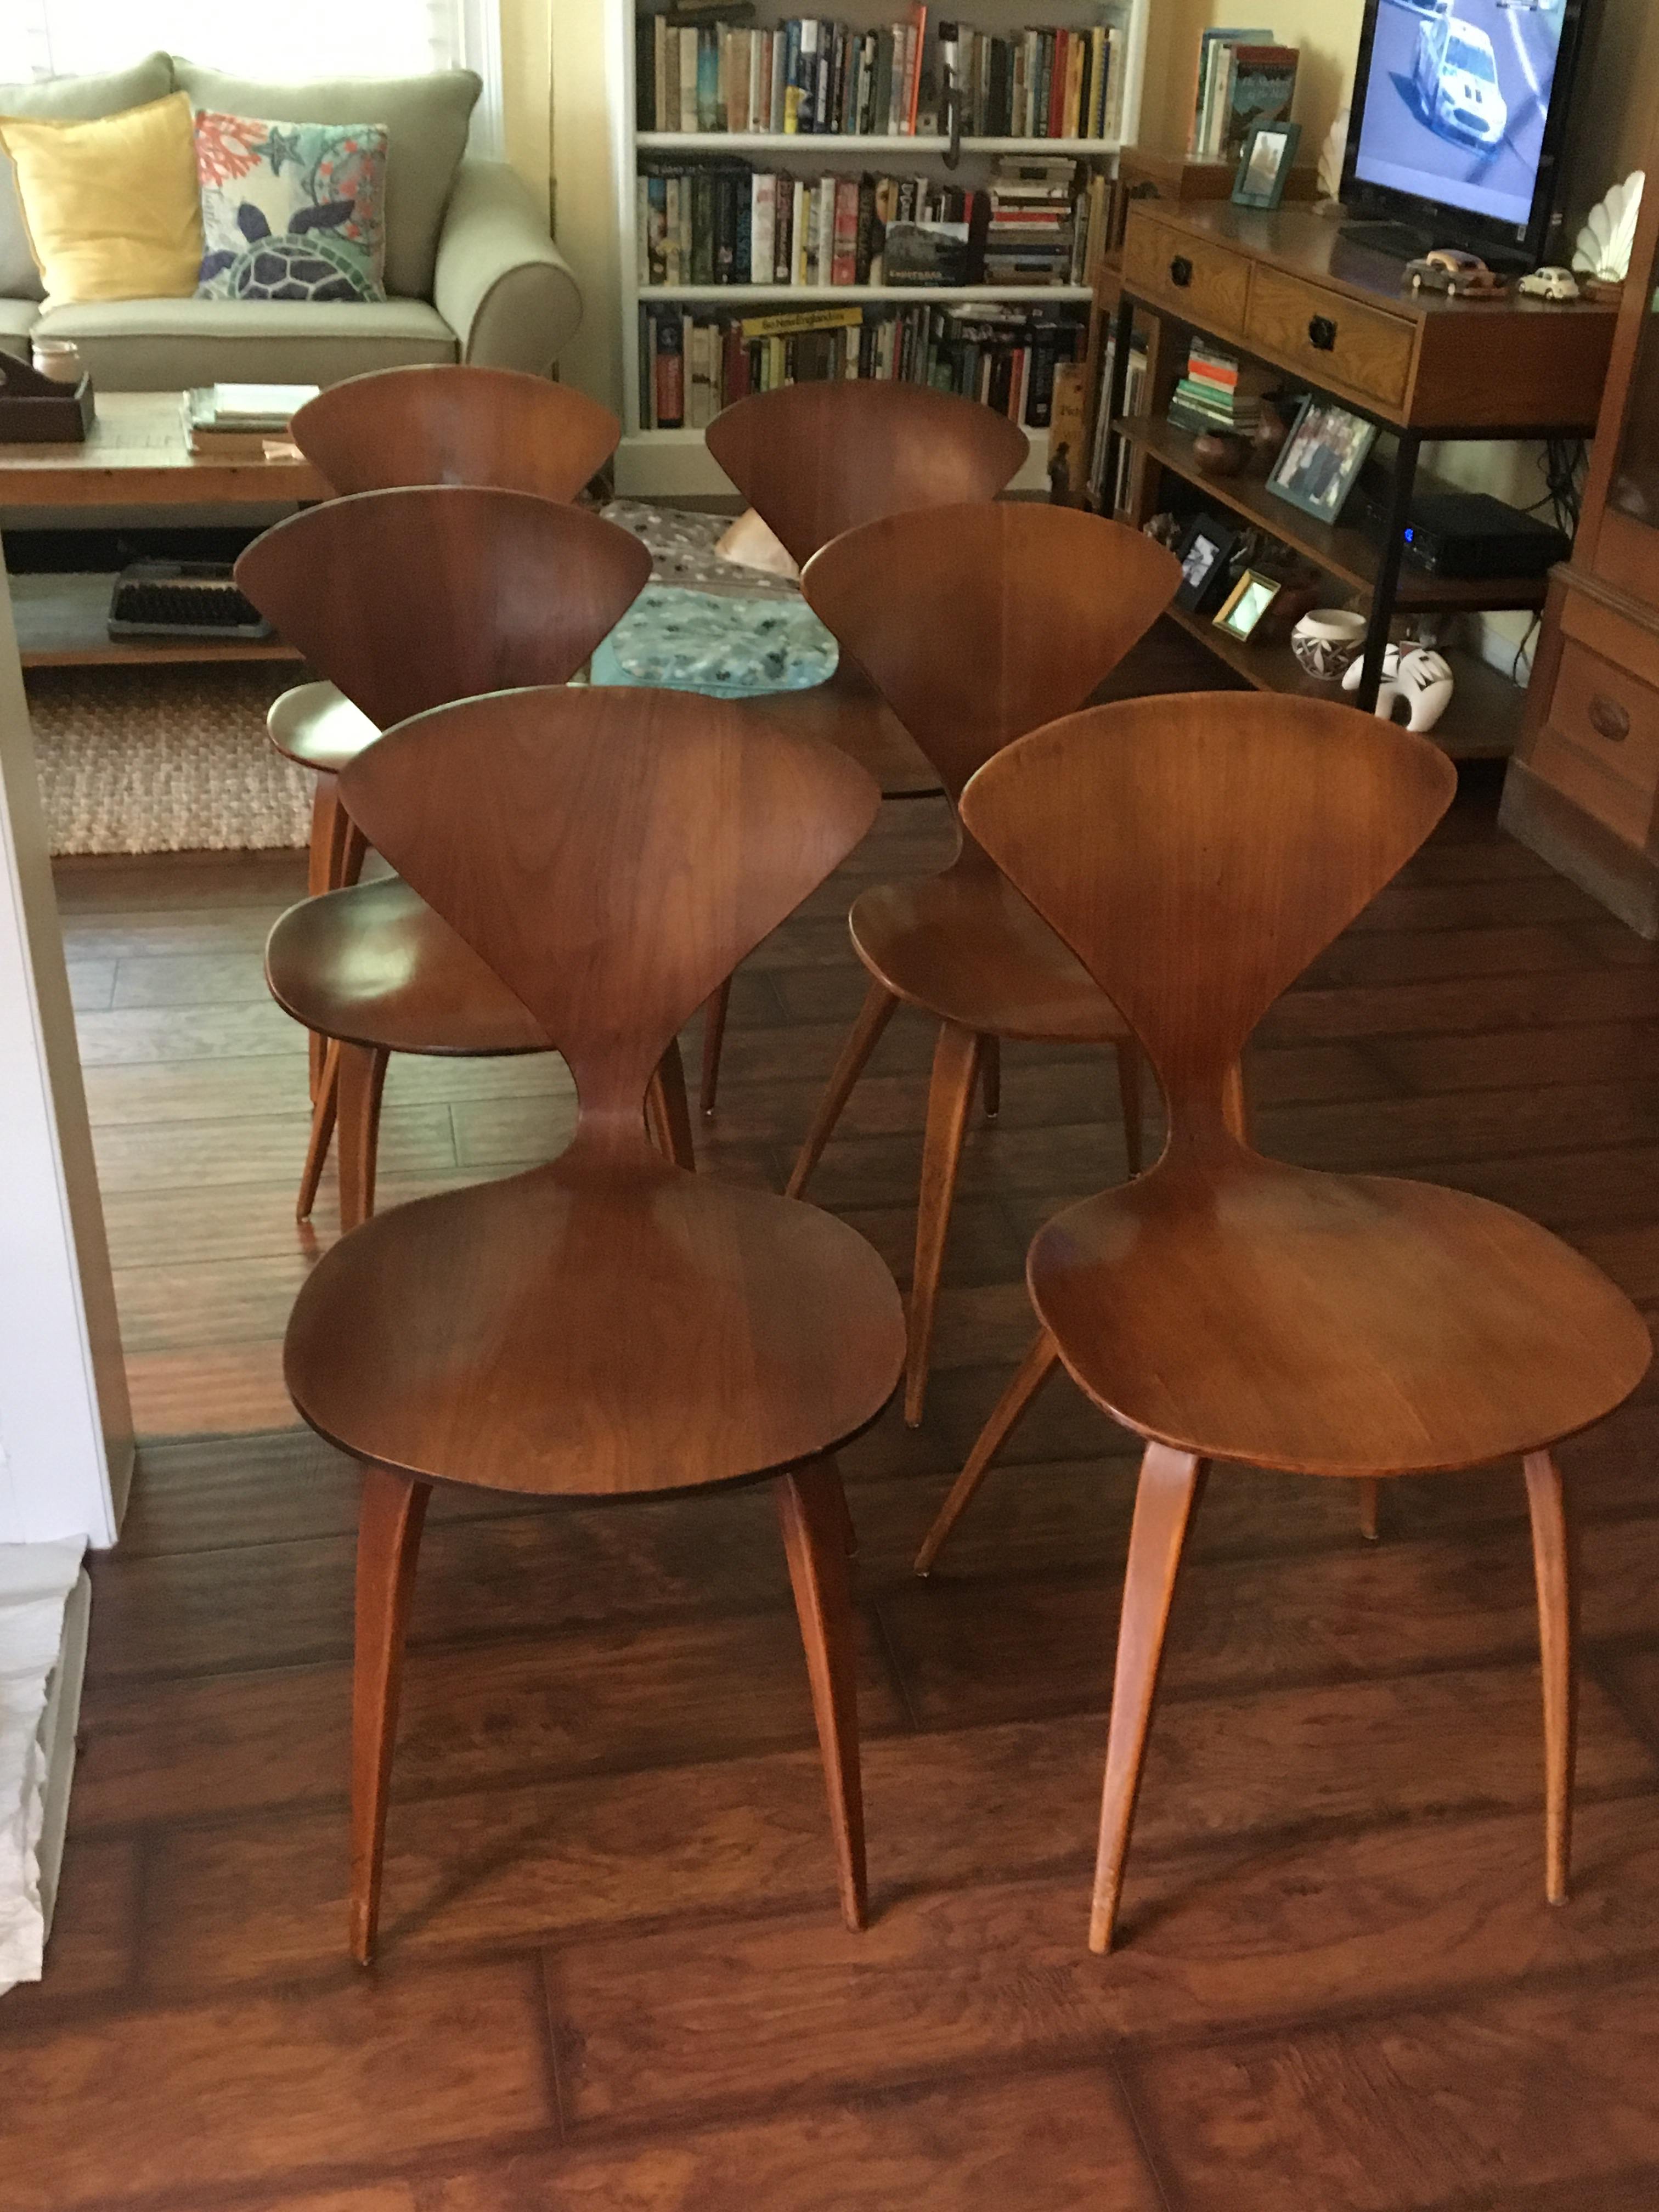 Mid Century Modern Norman Cherner For Plycraft Chairs   Set Of 6   Image 2